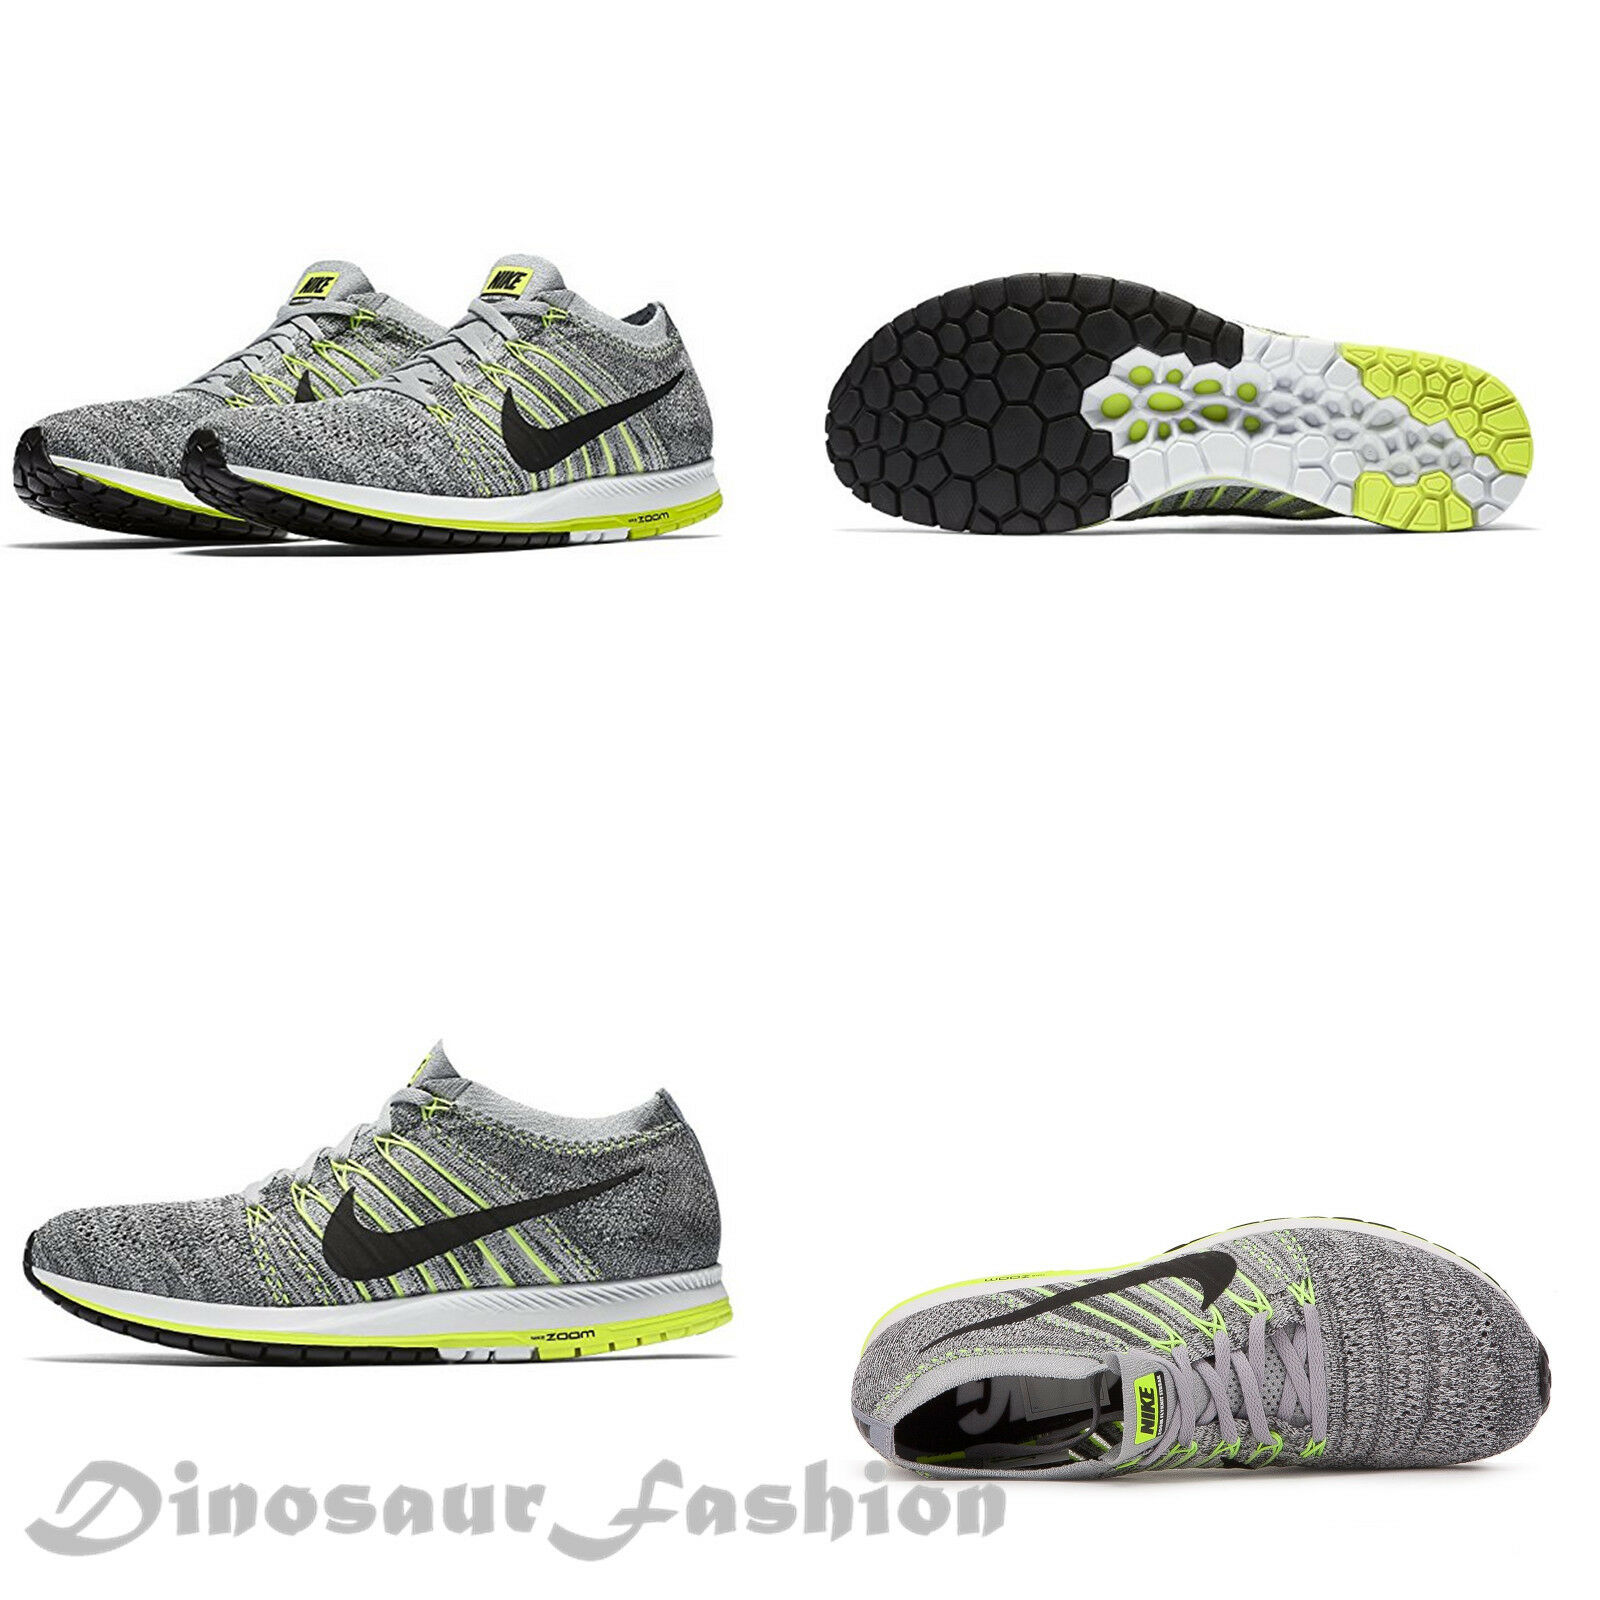 NIKE FLYKNIT STREAK (835994-007) UNISEX UNISEX UNISEX Running- Shoes,New with Box f1bf2c